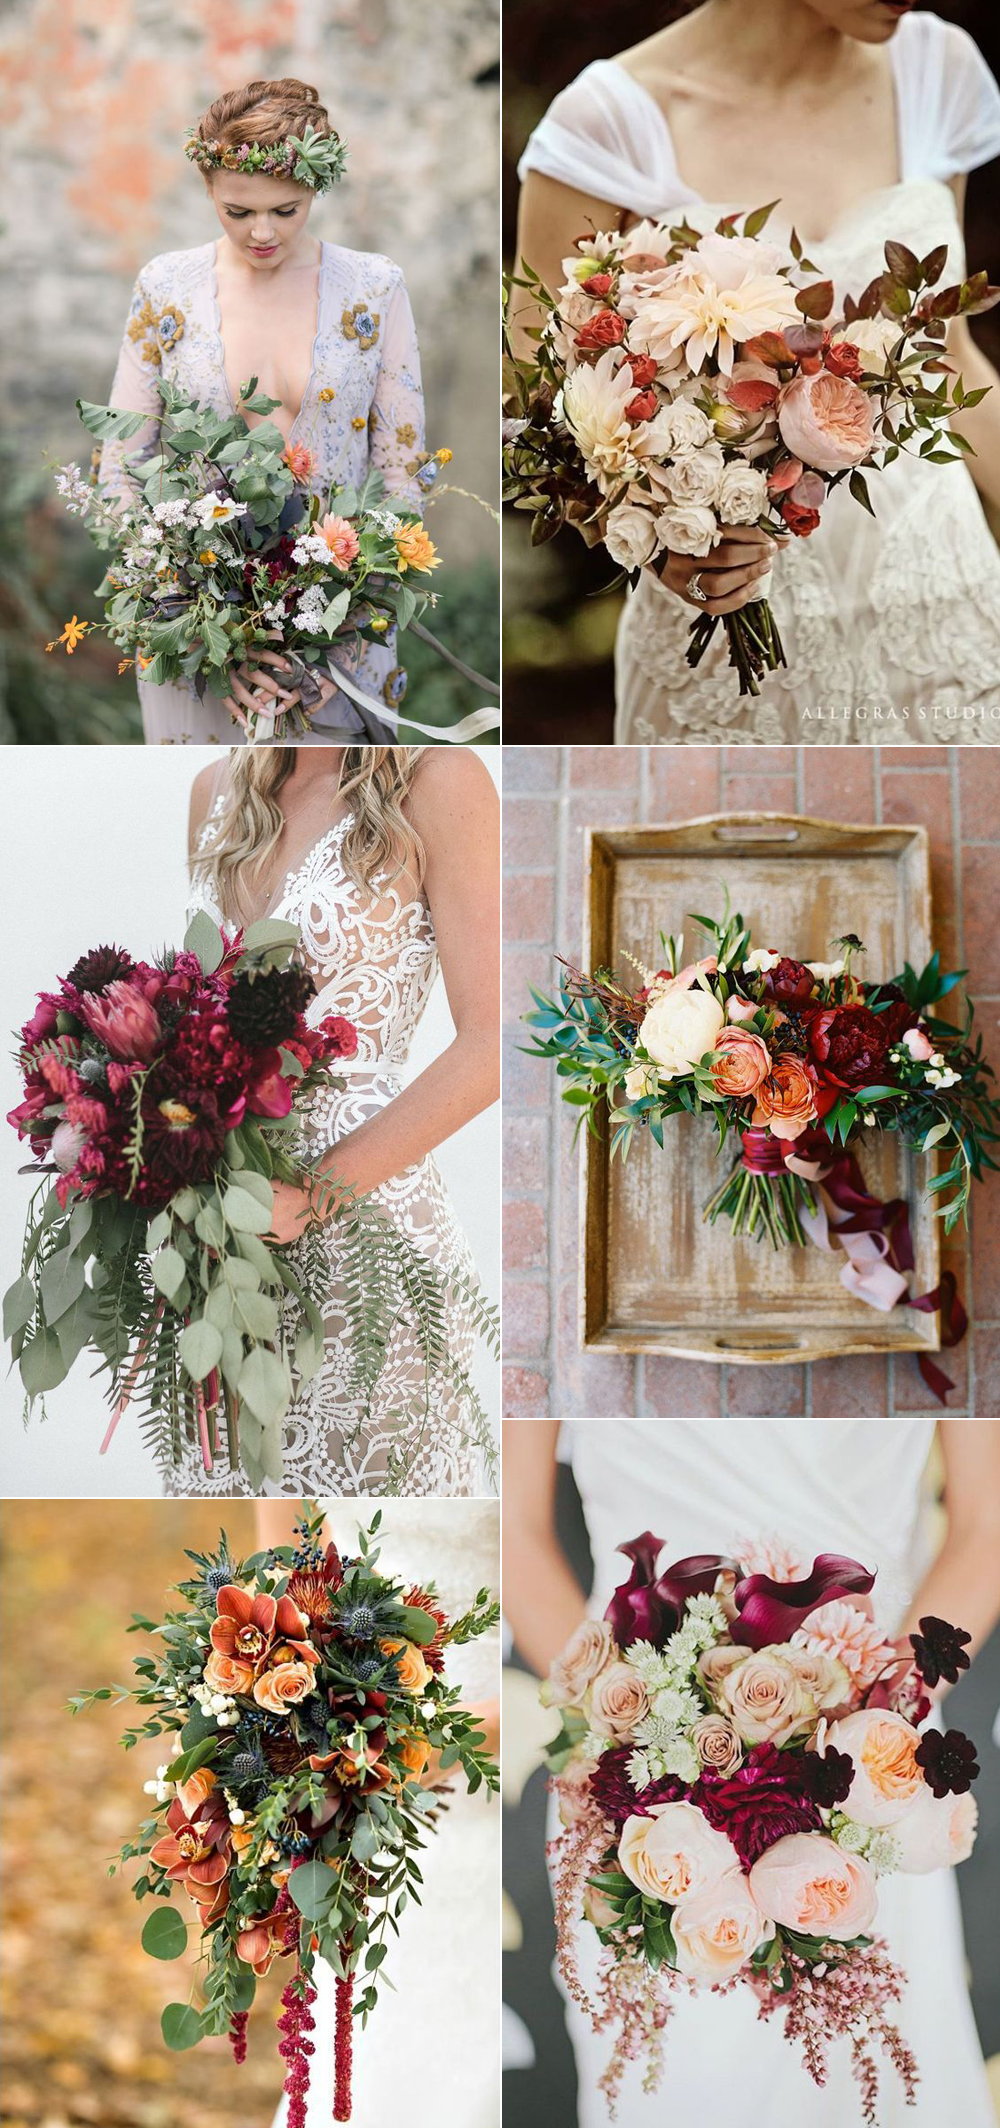 {Image Sources - Top left to right: Featured on  Country Living  - photo by Danielle Coons Photography; Featured on  Wed Book ; Featured on  Country Living  - photo by Miramar Photography; Featured on  Country Living  - photo by Jen Rodriguez Photography; Featured on  Wedding Chicks ; Featured on  Mod Wedding  - photo by  Lauren Peele Photography }